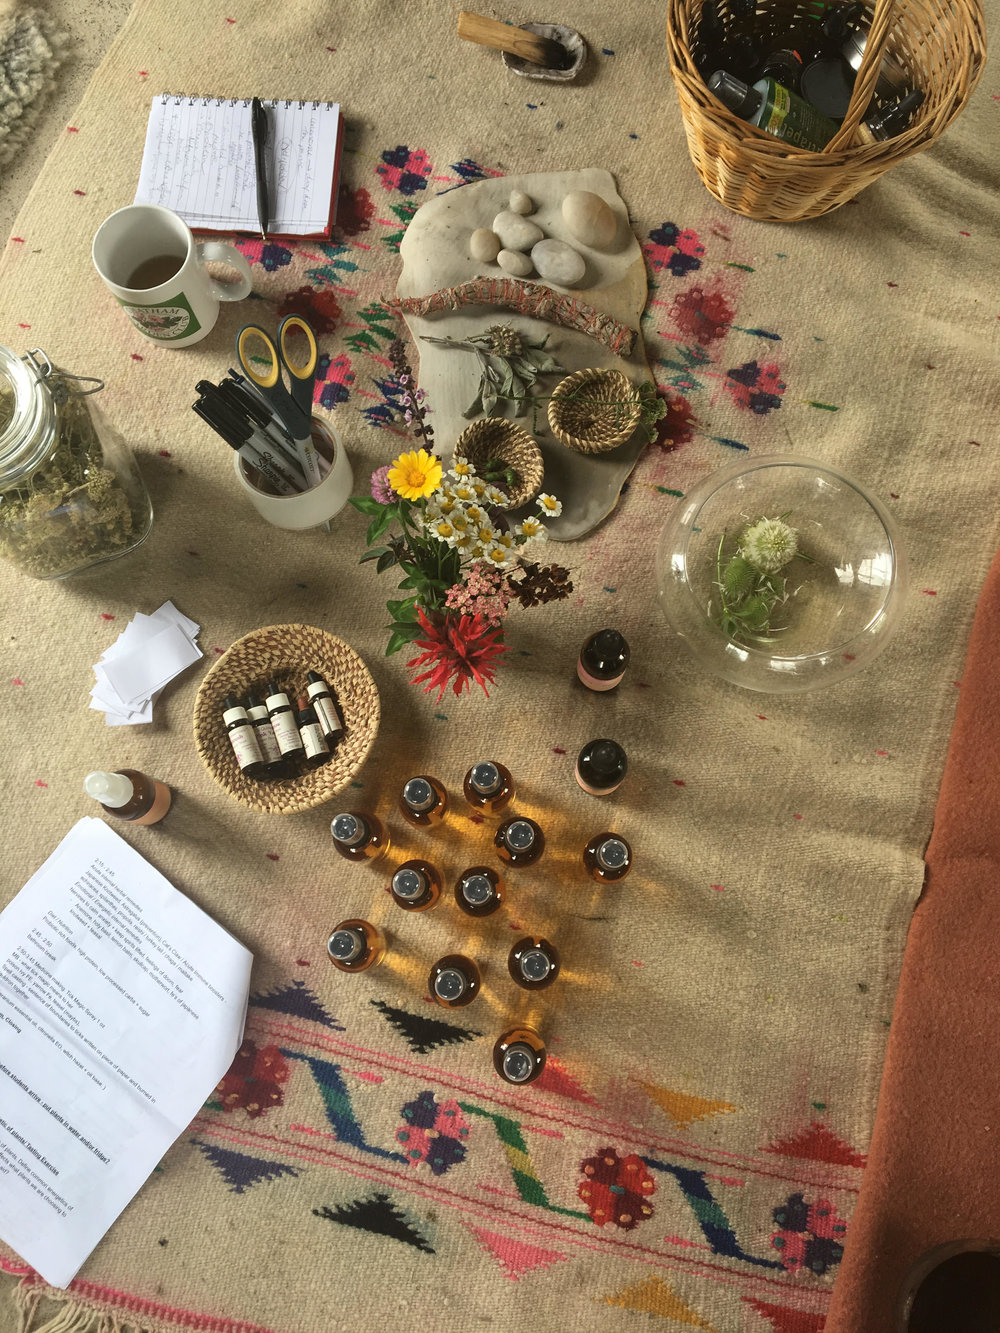 winter workshops  - Th 1/11 6-8pm :: Herbal Care for the Home Team at Good Fight Herb Co. herb shop ~ 253 1/2 warren st., hudson, nyGather your squad - be it family (of origin, chosen), your collective house, domestic partners, etc. - and participate in a down home, approachable way to take care of each other with herbs. We'll cultivate tools to promote our agency and self-determination on how we choose to take care. We'll unpack first aid assessment and make medicine that relates to everyday situations.  We'll break down emotional labor, holding space for ourselves and the team, and practice tools for creating healthy boundaries. We'll decipher ways we can carve out time for care, and how to engage in this intimacy so that our squad goals are on point! $65 ; RSVP